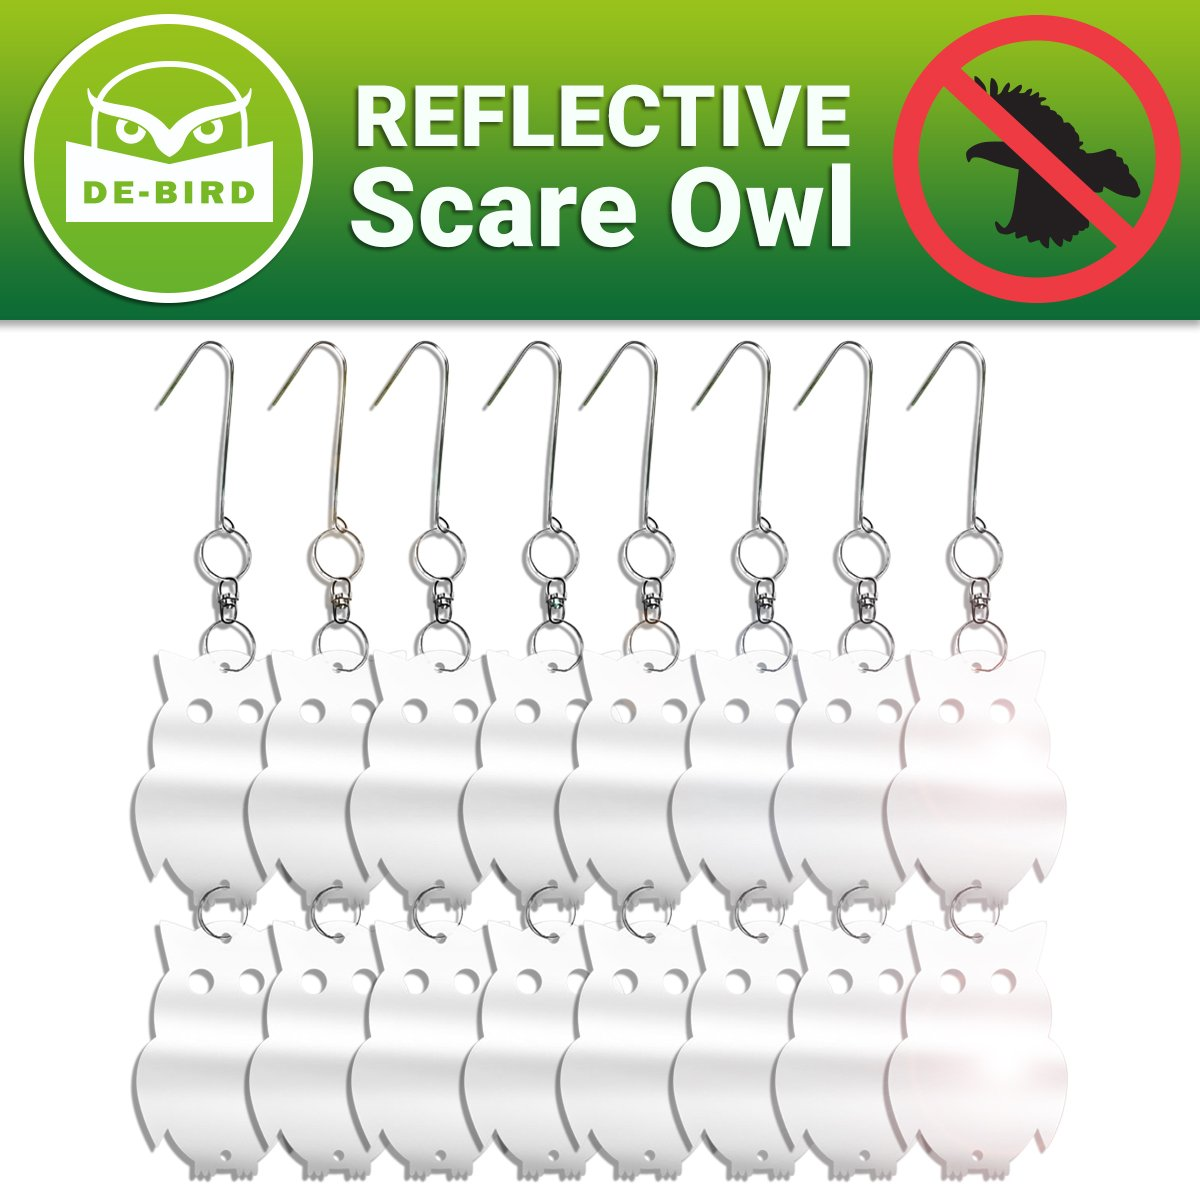 Reflective Bird Repellent Owl - Attractive Decoy Will Keep Woodpeckers and Nuisance Birds Away from Property - Includes Expert User Guide - 8 Pack - Save Time and Money on Cleanups and Repairs